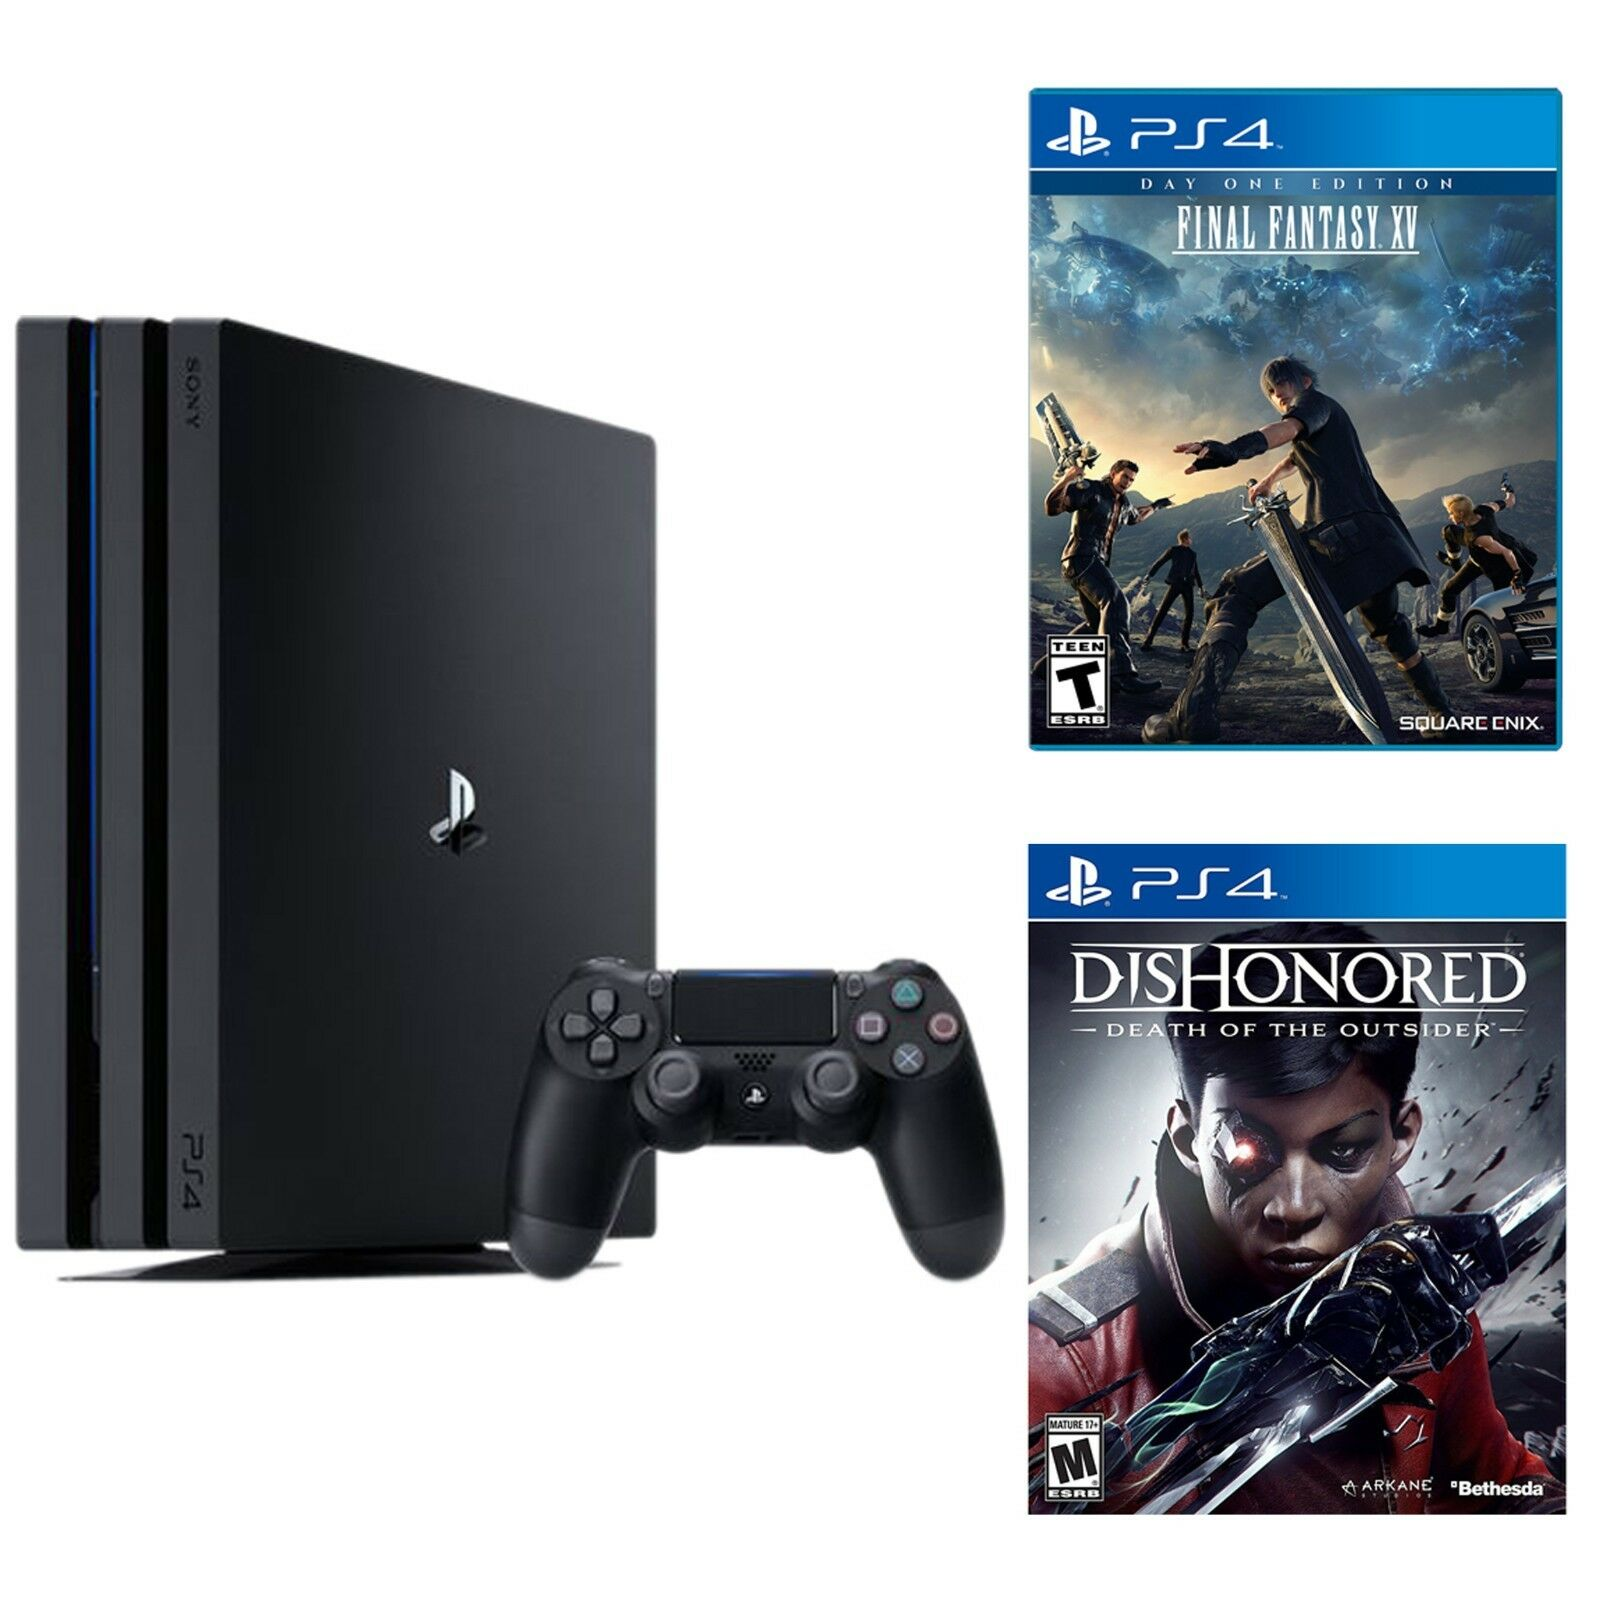 Playstation-4-Pro-1TB-Console----Dishonored--Death---Final-Fantasy-XV